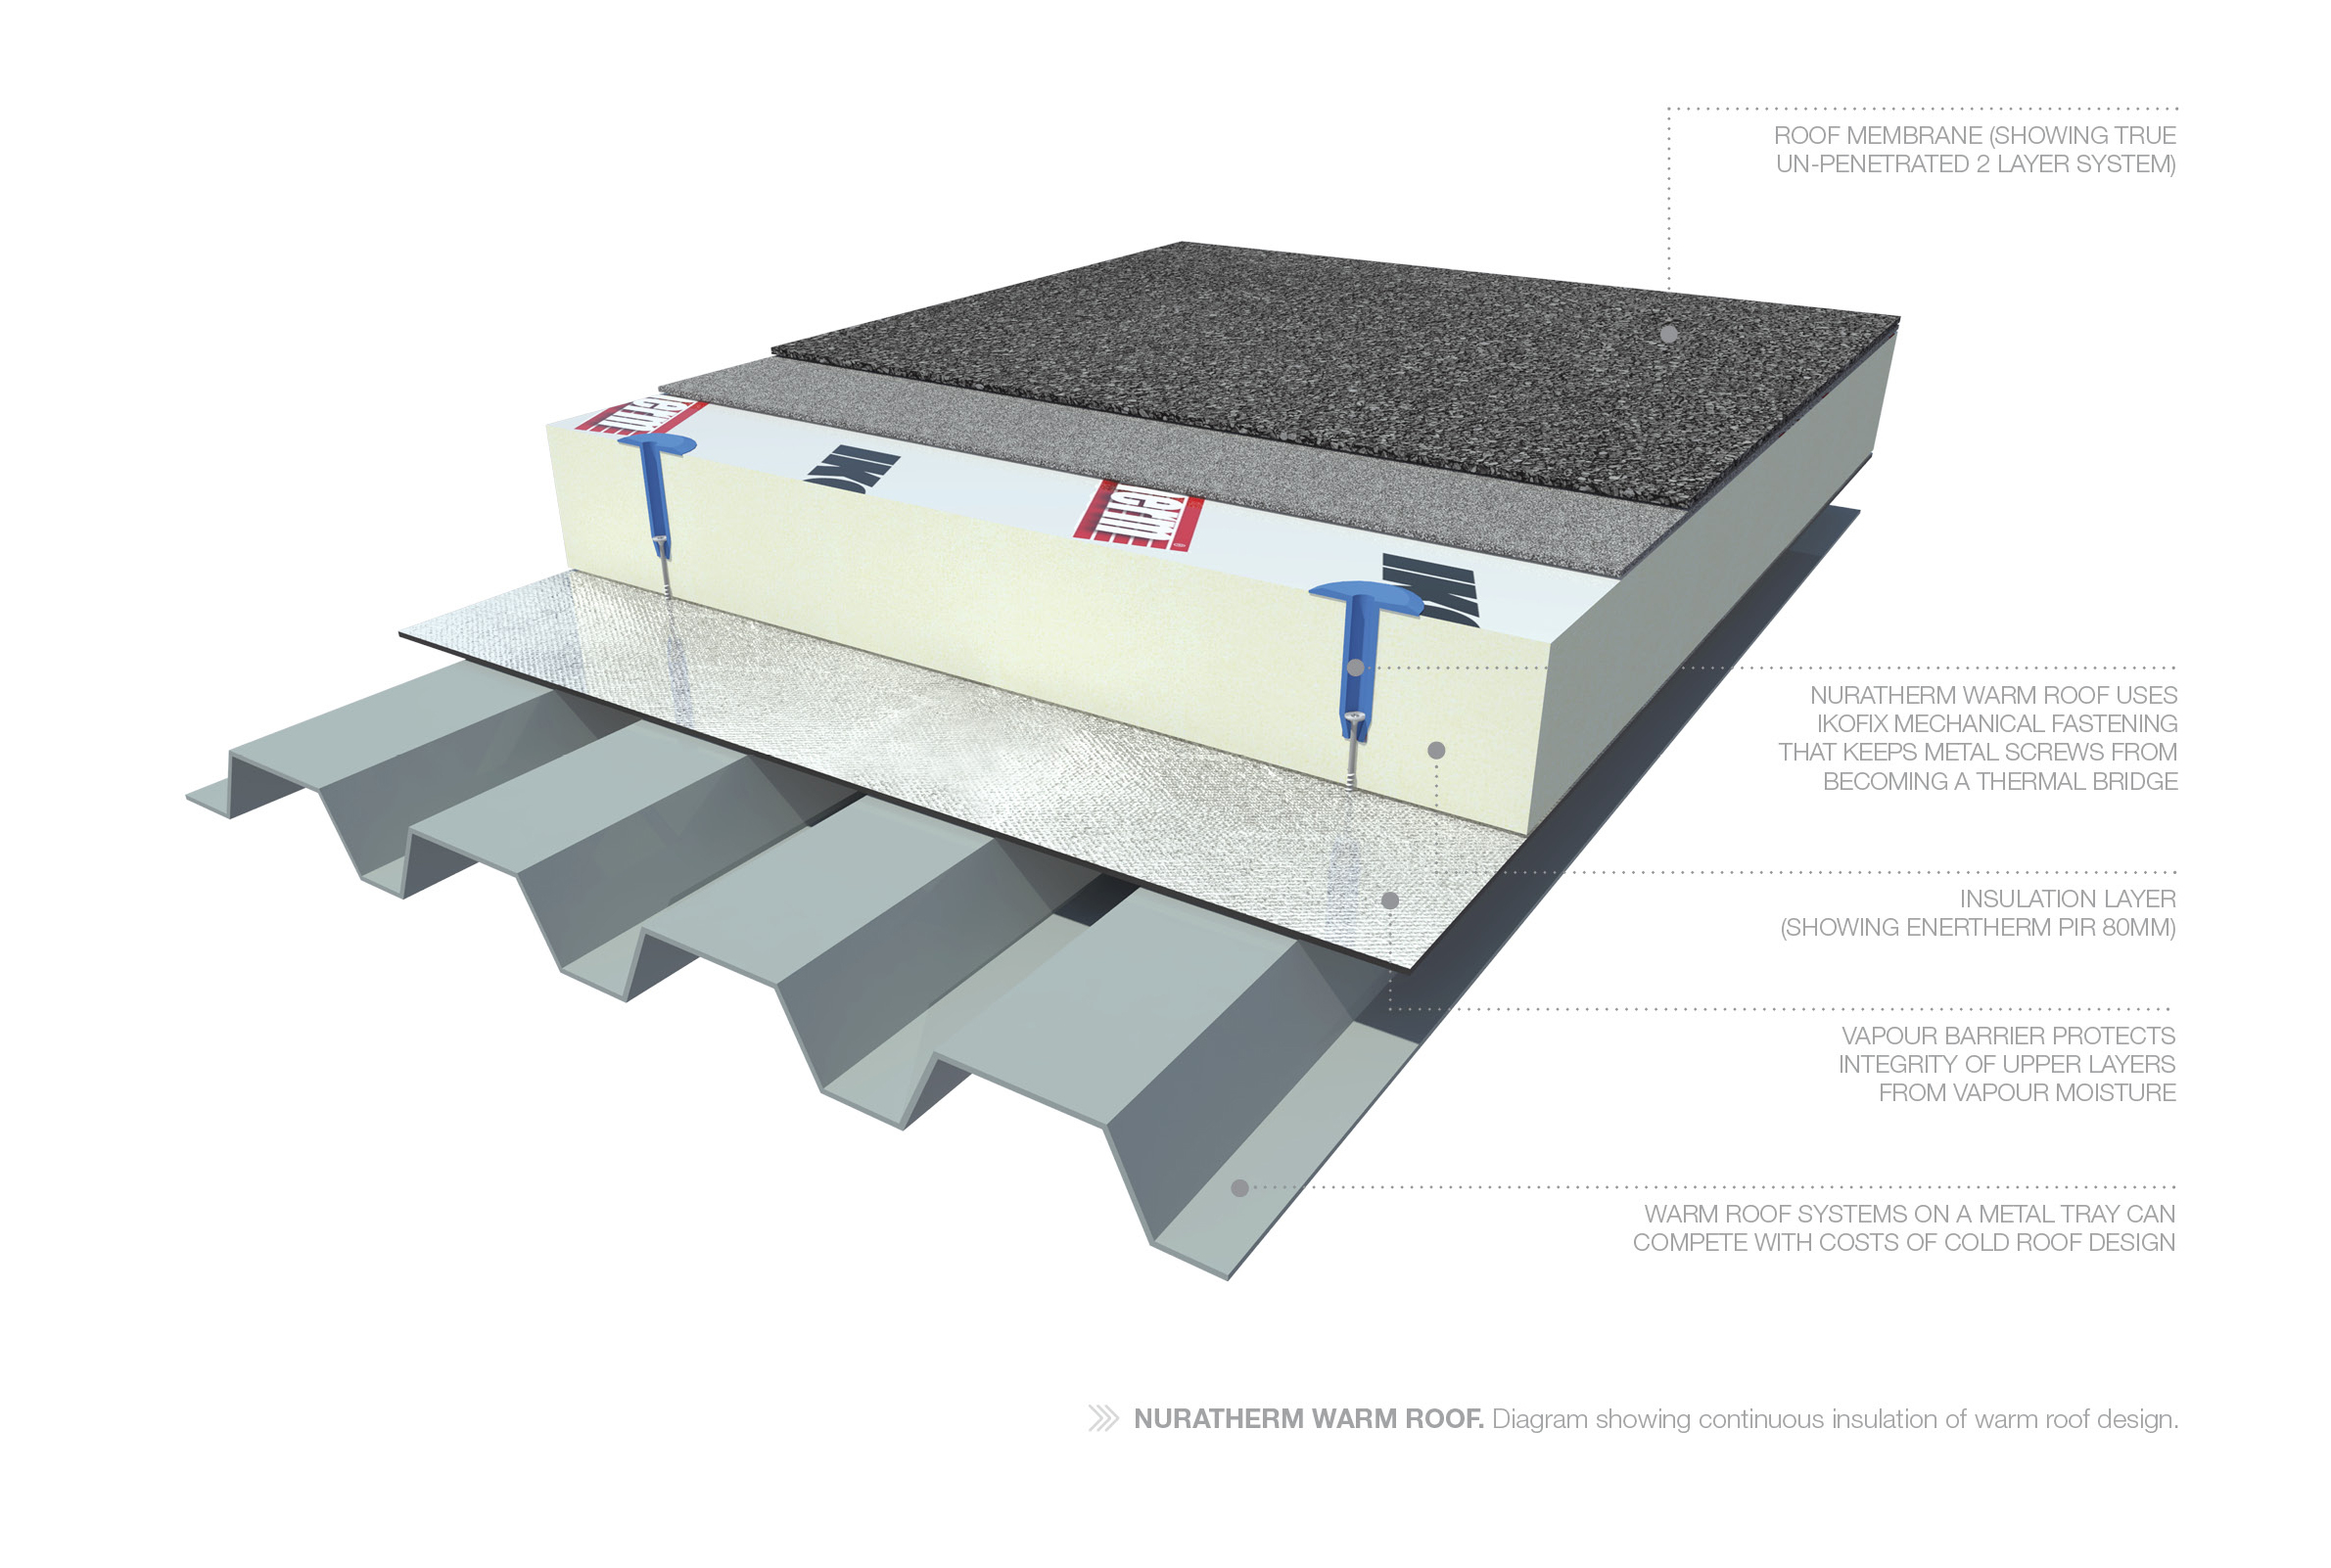 Flat Roof Membrane Roofing Waterproof Membrane Nuraply 3pm within proportions 2381 X 1602